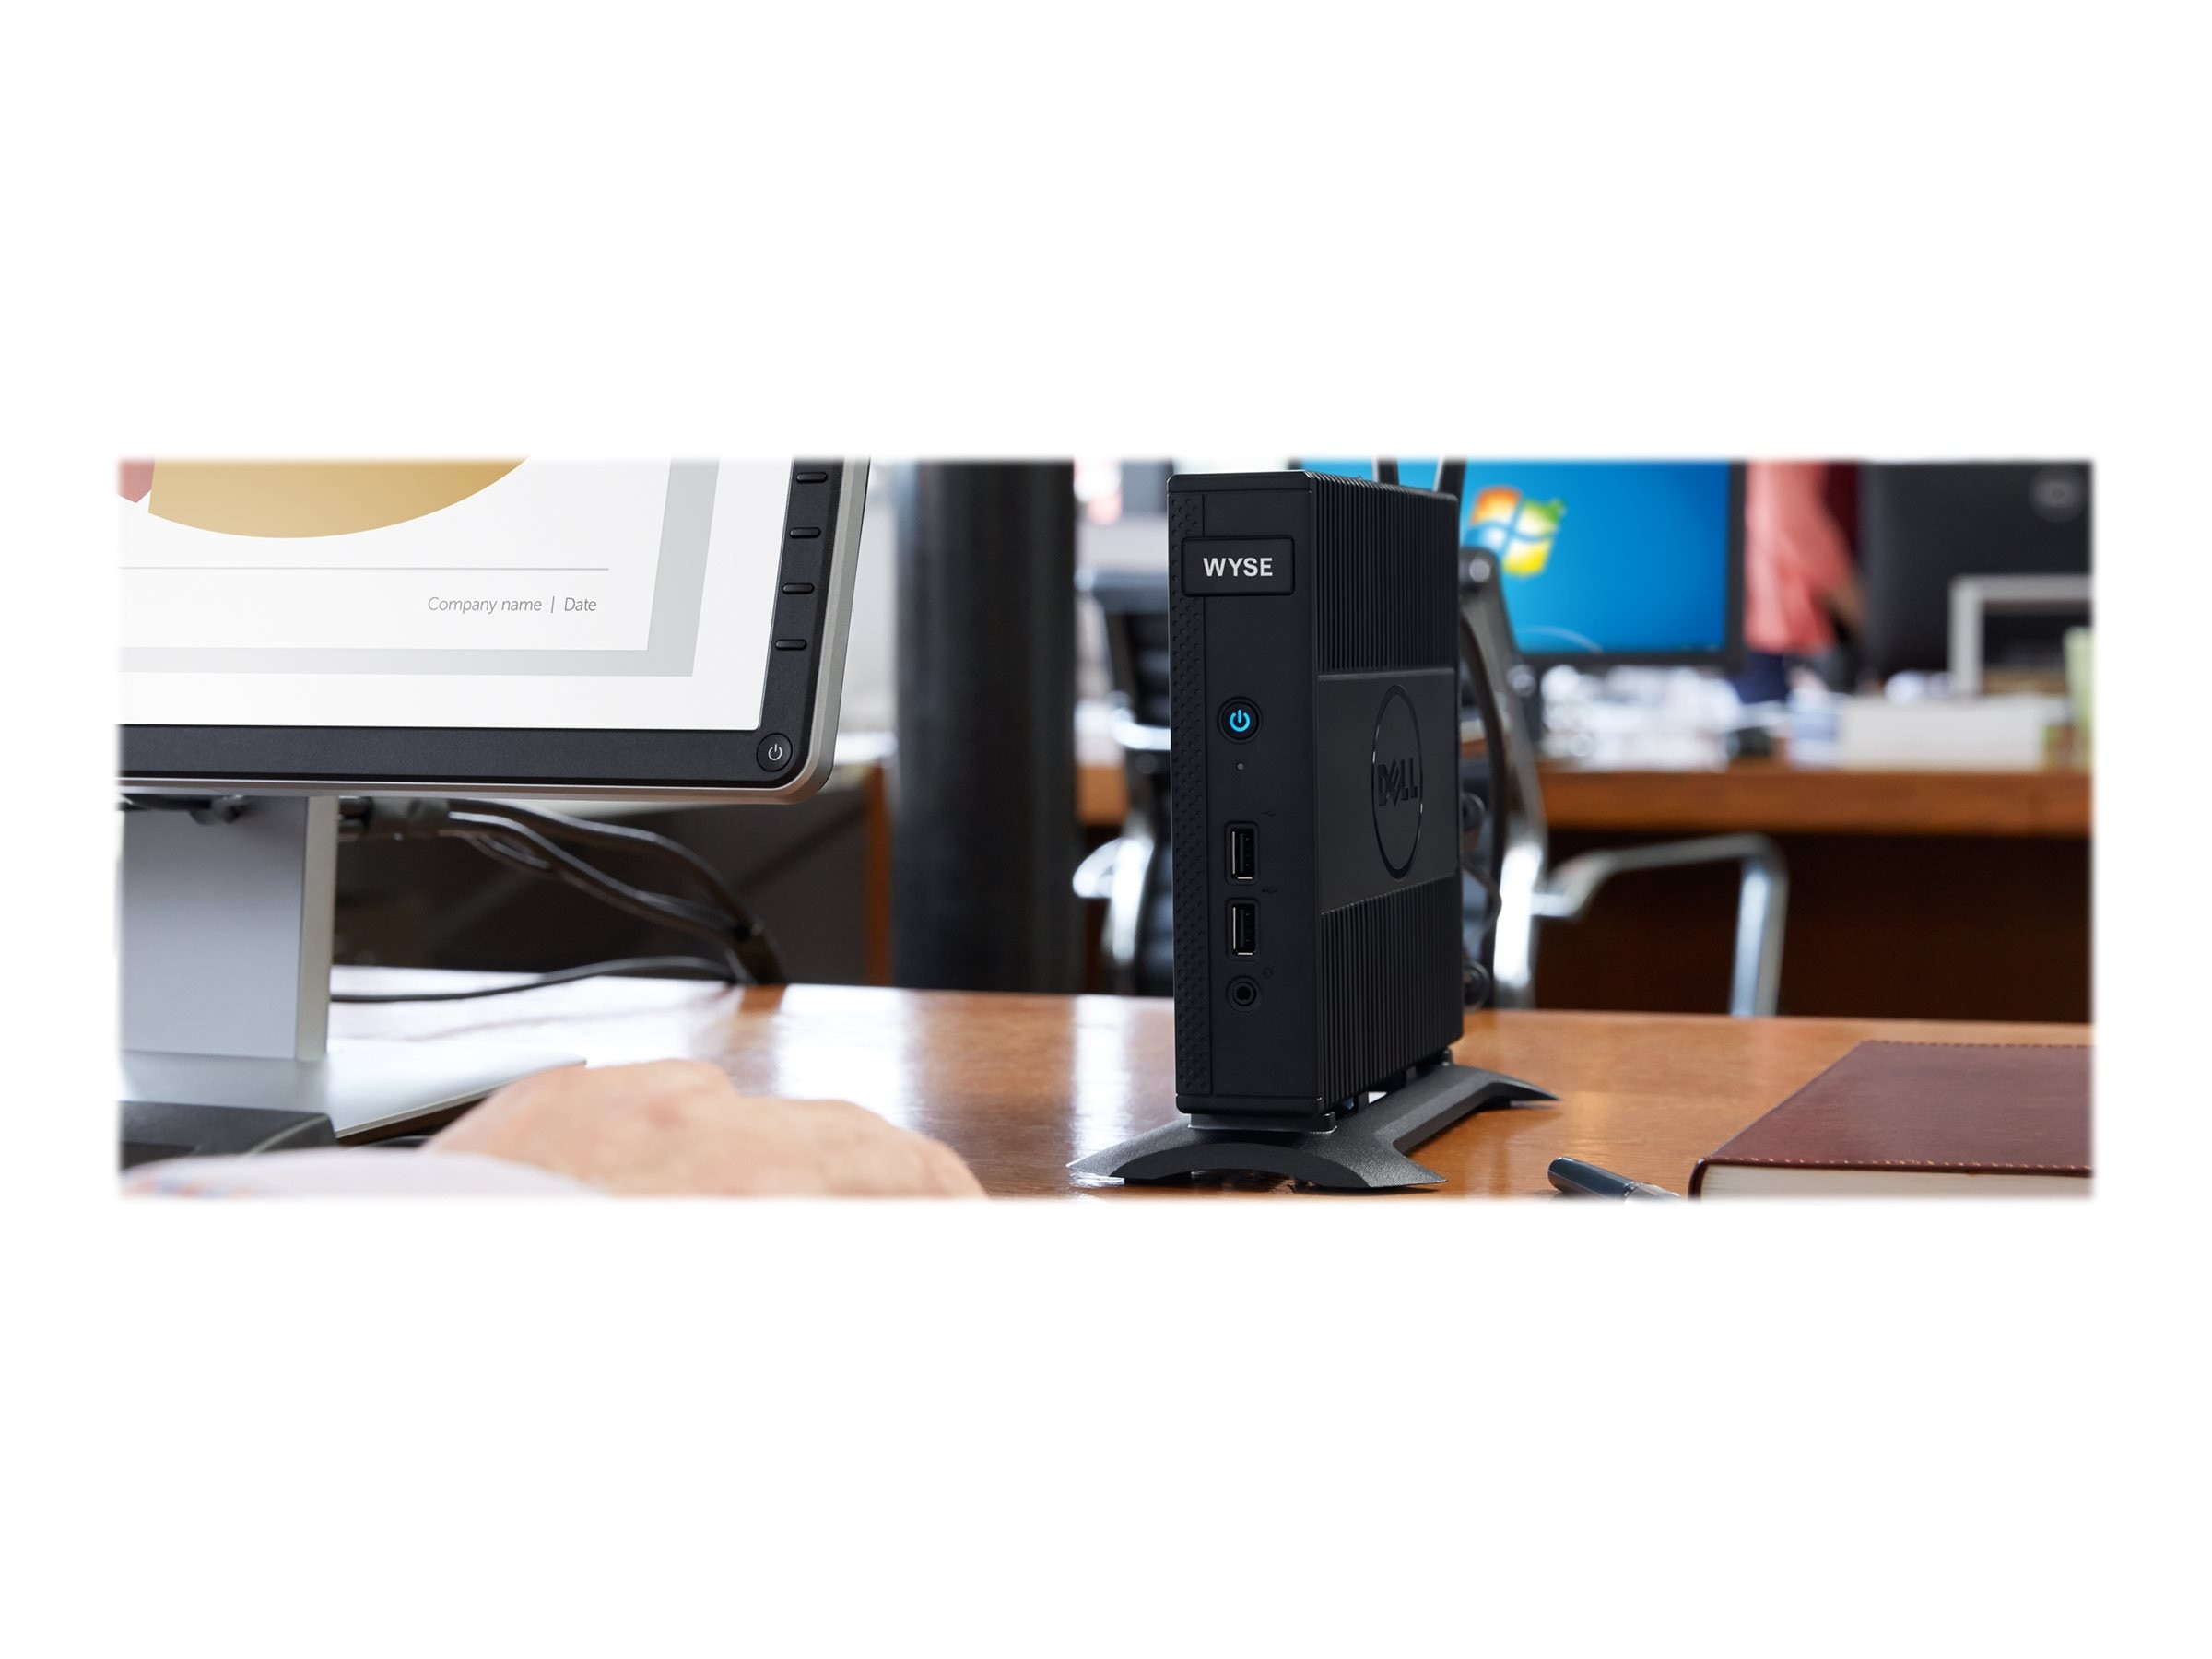 Wyse 5020 D90Q7 Client QC 4GB RAM 16GB Flash WES7, KTHYJ, 31008321, Thin Client Hardware